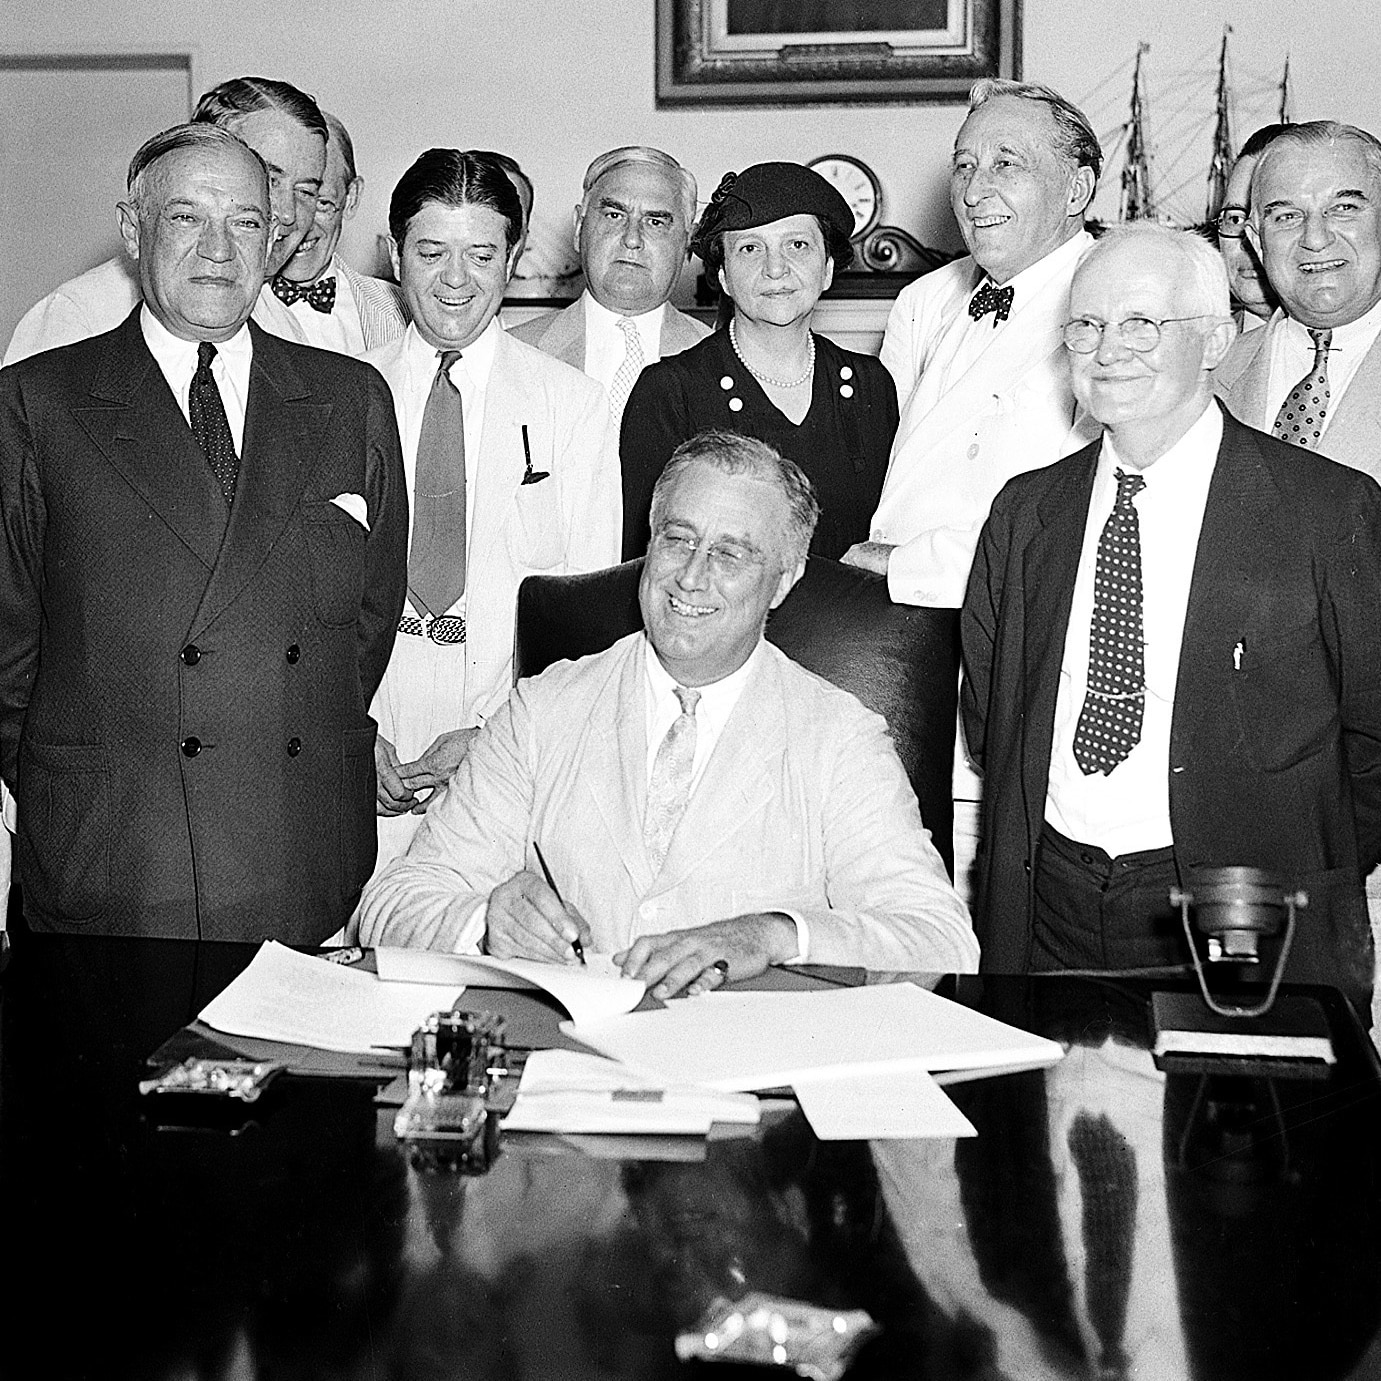 Franklin D. Roosevelt signing document while while men and a woman stand behind him (© AP Images)